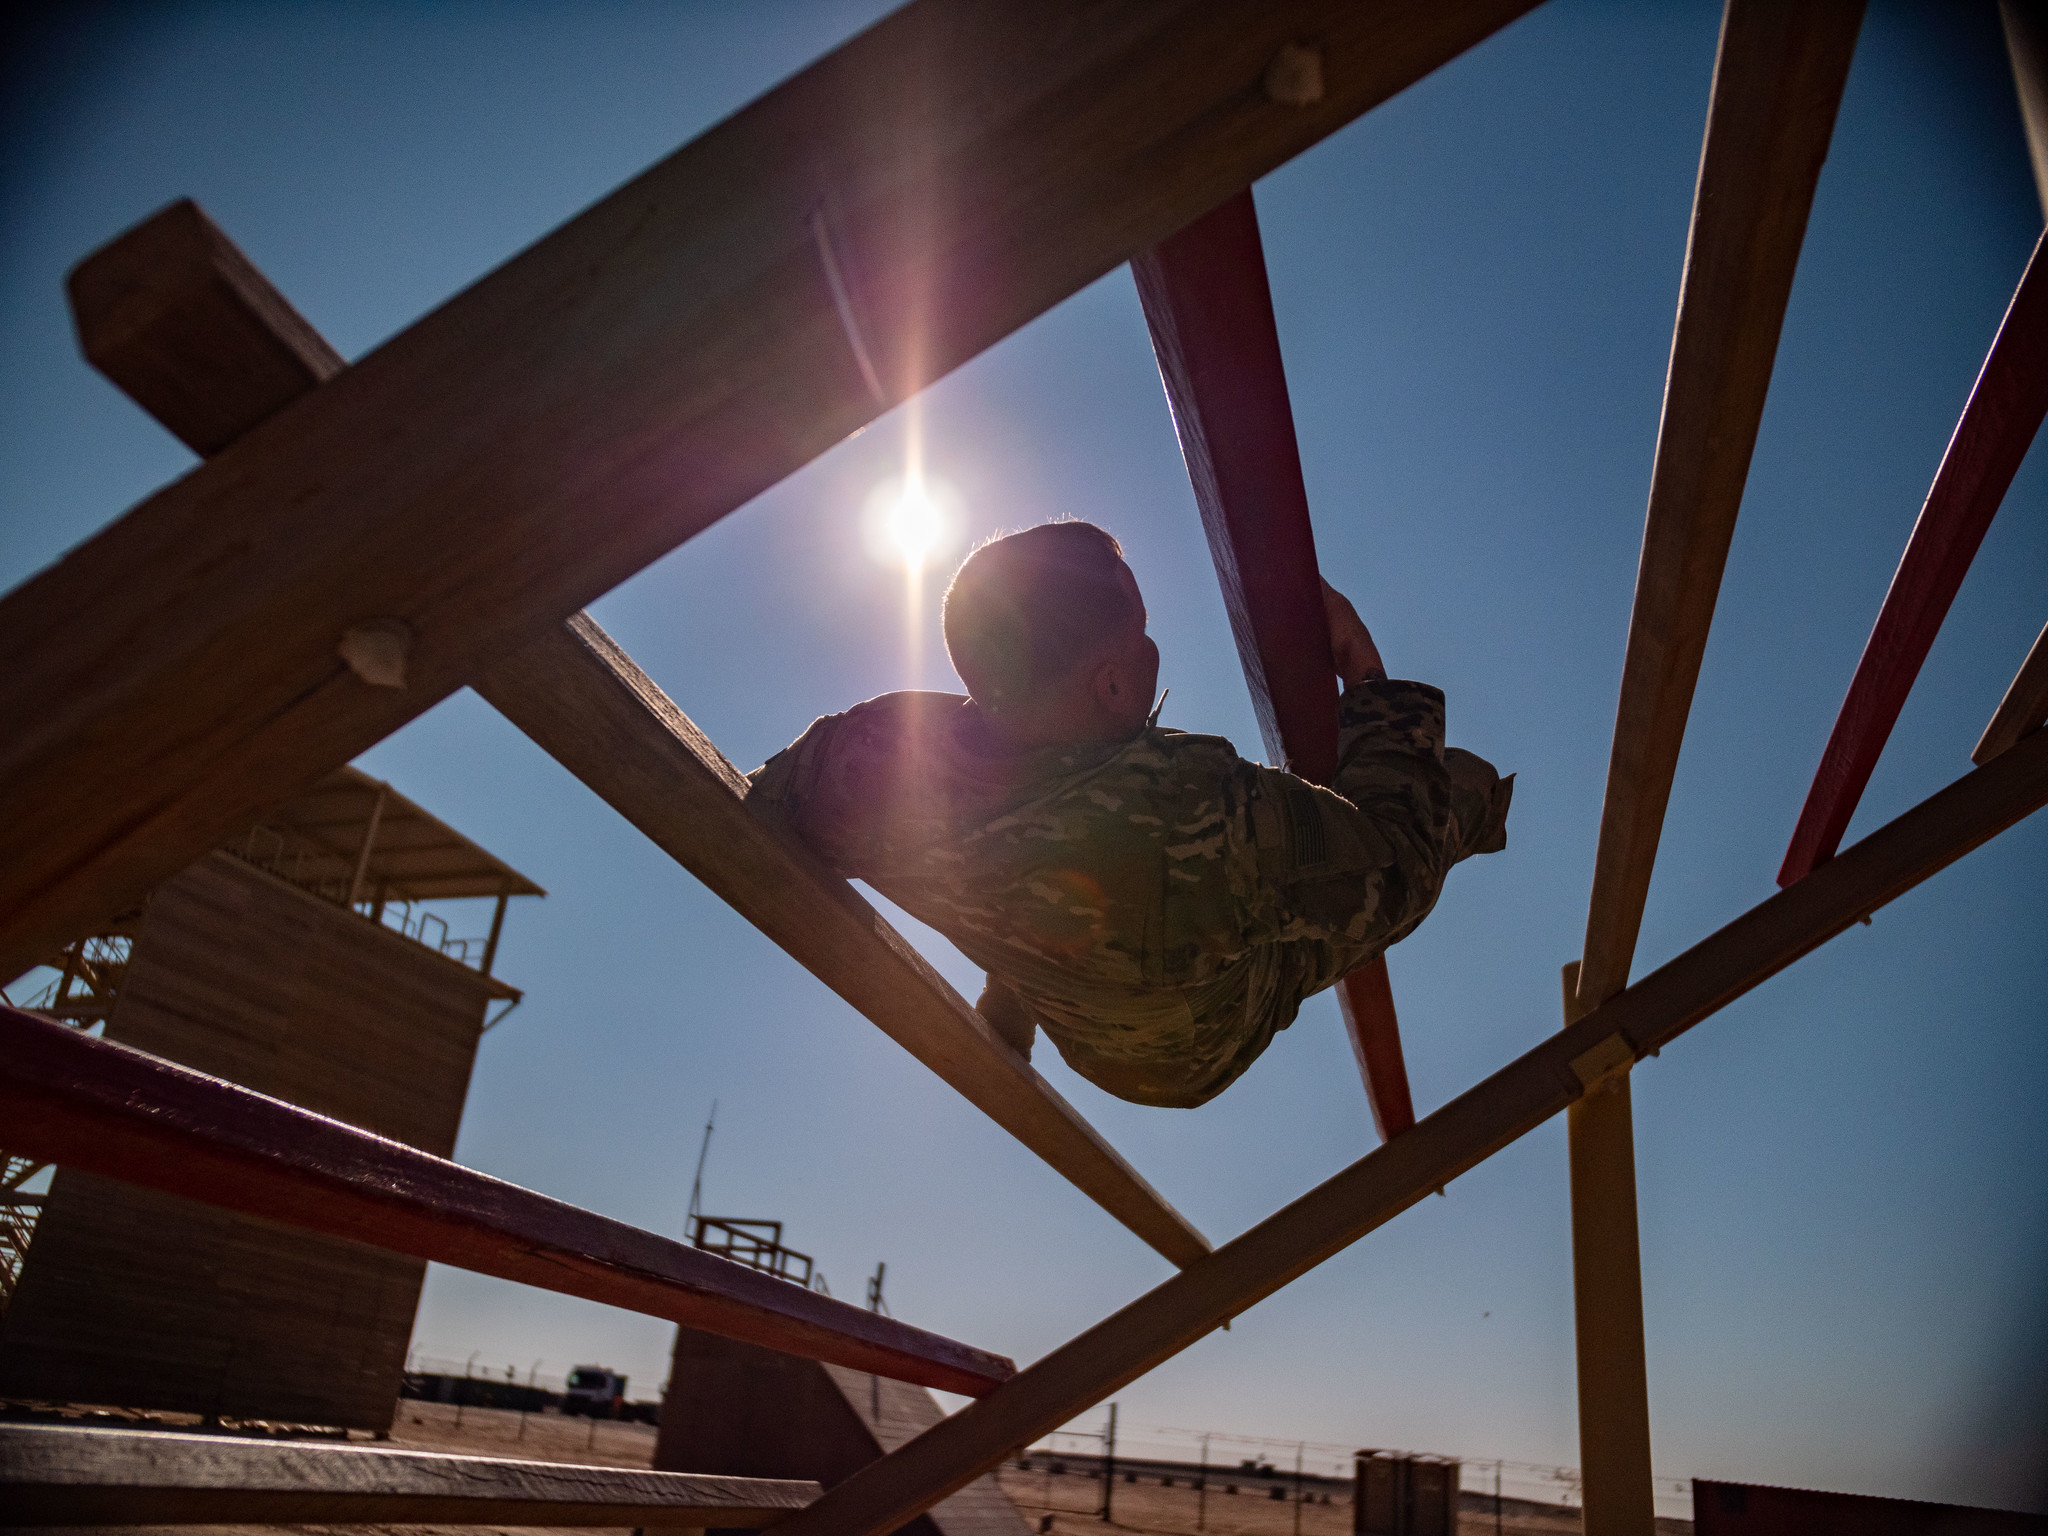 U.S. soldiers in the South Carolina National Guard's 4-118th Infantry Regiment, 30th Armored Brigade Combat Team conduct tryouts on the obstacle course for air assault school at Camp Buehring, Kuwait, Dec. 21, 2019. (Maj. David House/Army National Guard)